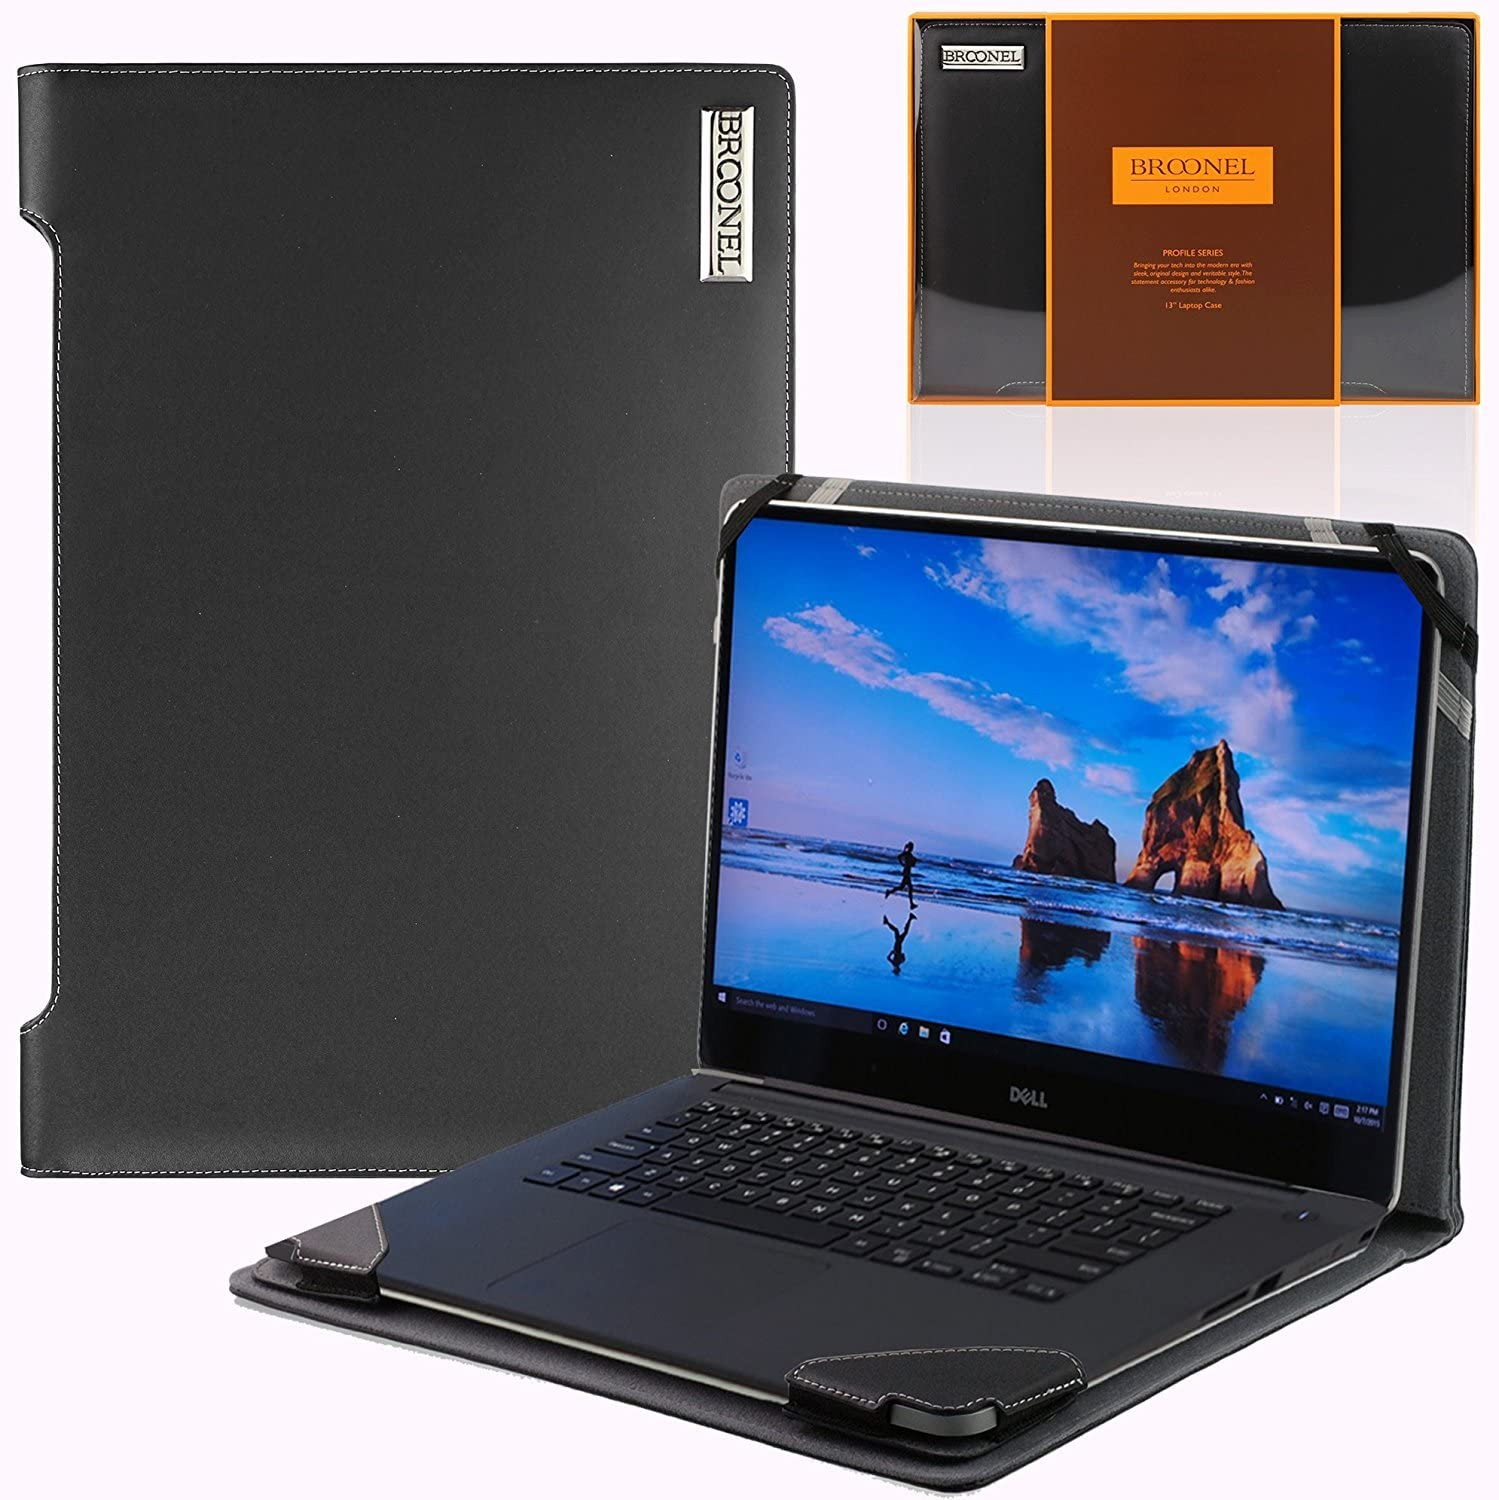 Broonel Profile Series Black Vegan Leather Luxury Laptop Case Compatible with TheHPEnvy x360 15 ar052sa 15.6 inch 2 in 1